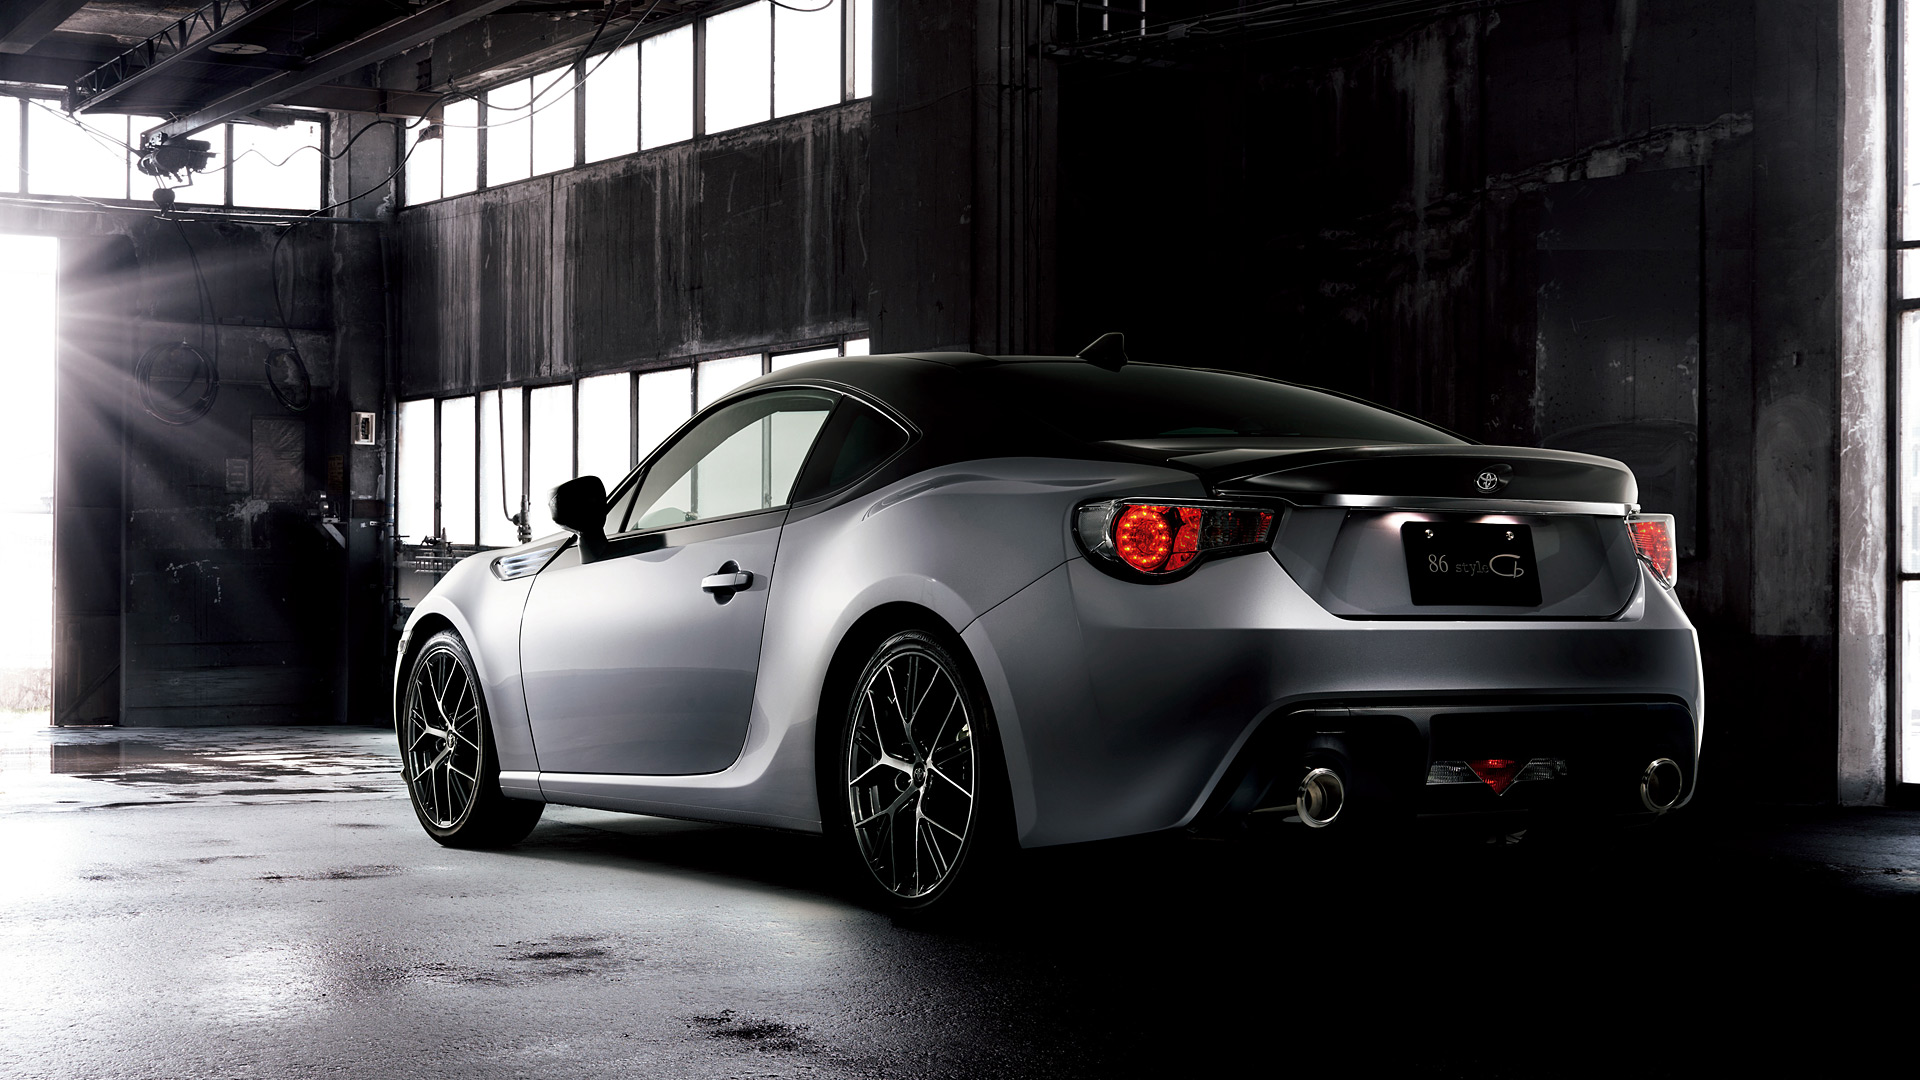 2015 Toyota 86 Style Cb Picture - Lampu Belakang Toyota Celica , HD Wallpaper & Backgrounds